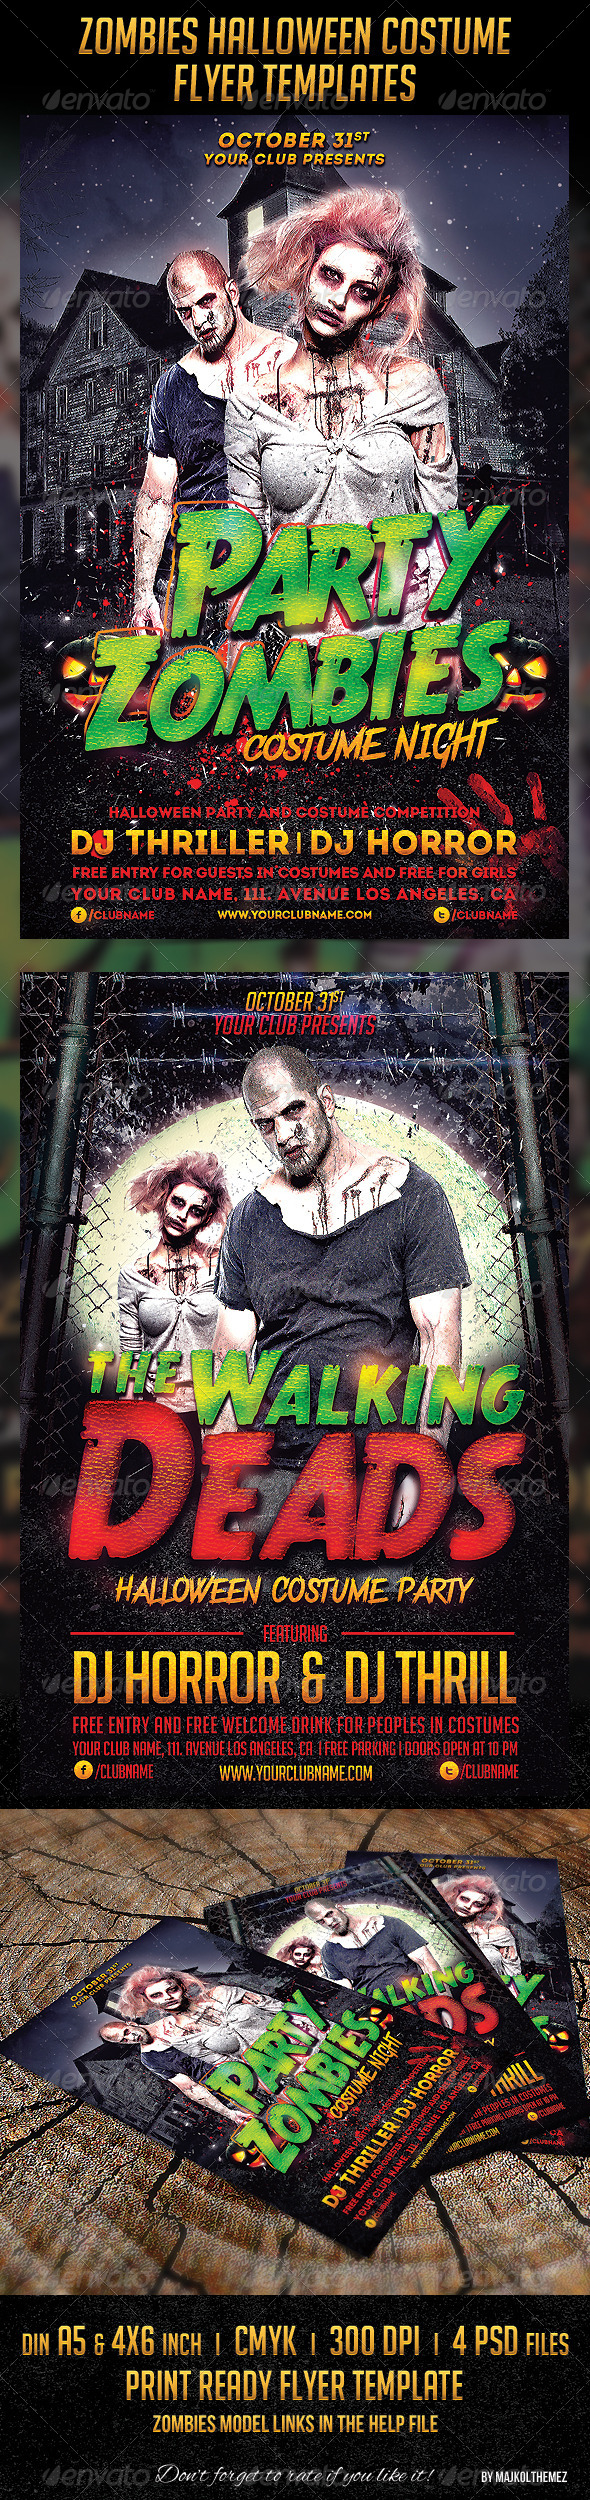 Zombies Halloween Costume Flyers - Clubs & Parties Events